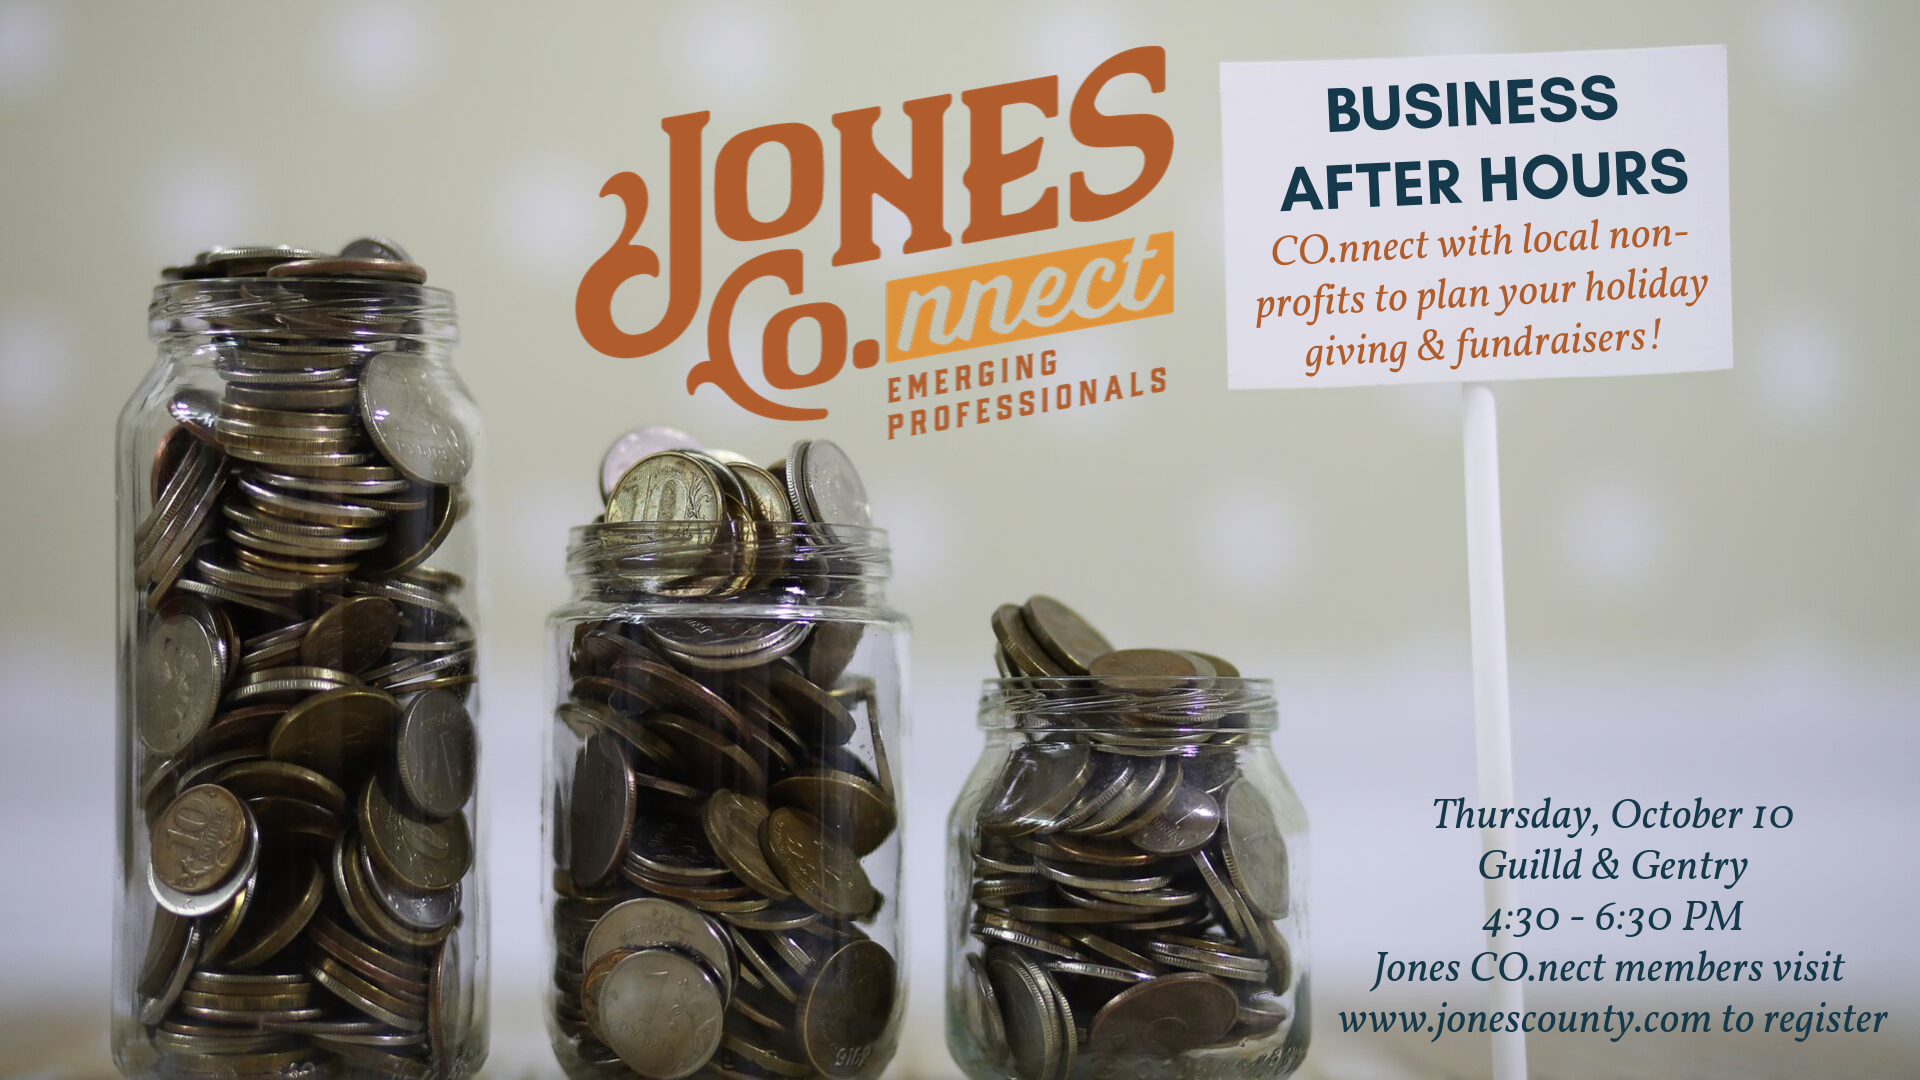 The City of Laurel, Jones CO.nnect Business After Hours